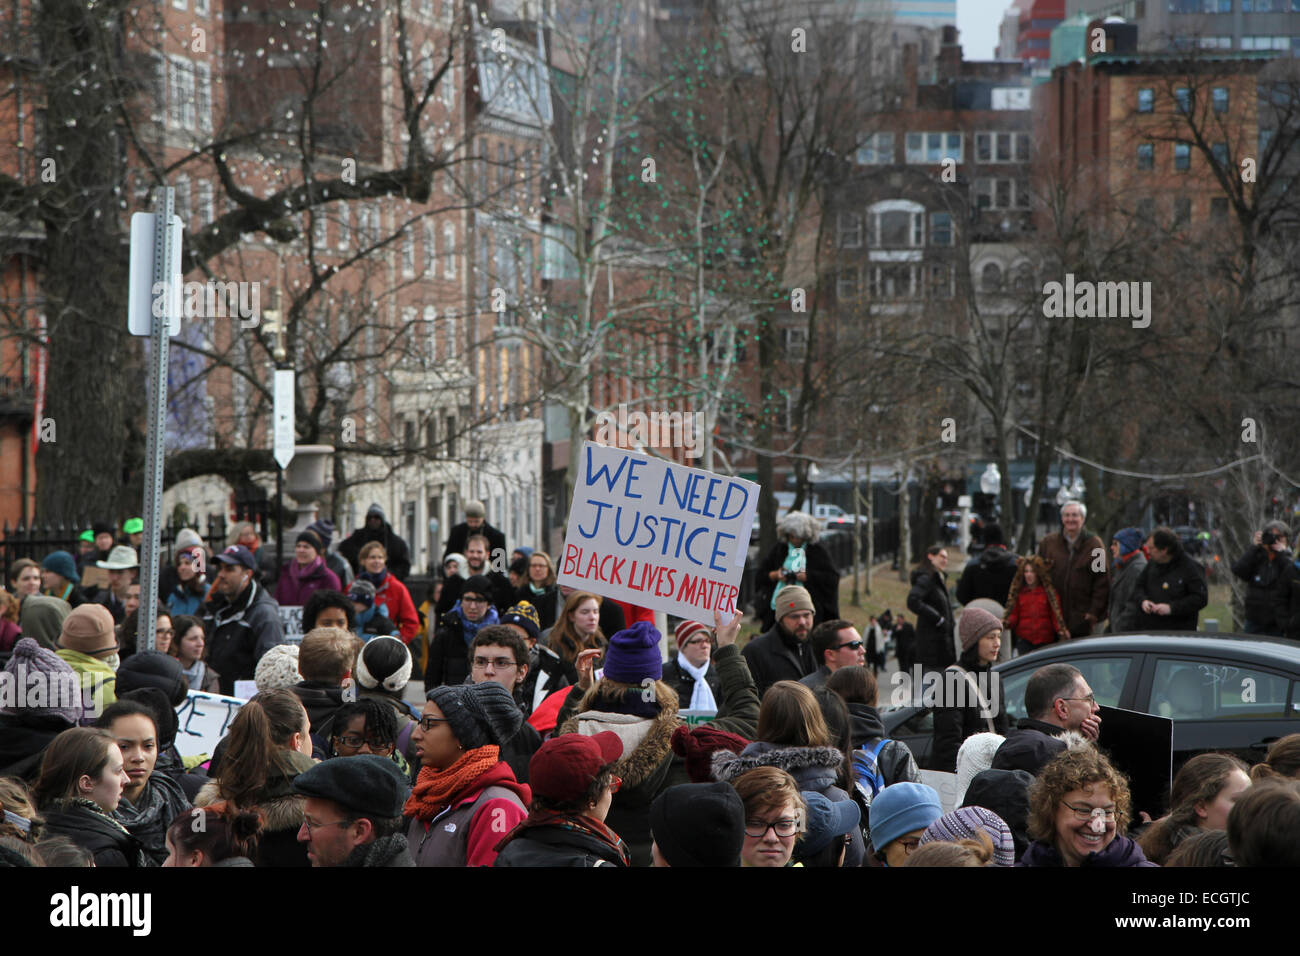 Boston, Massachusetts, USA. 13th December, 2014. People gather for the Millions March protest in Boston, Massachusetts, - Stock Image